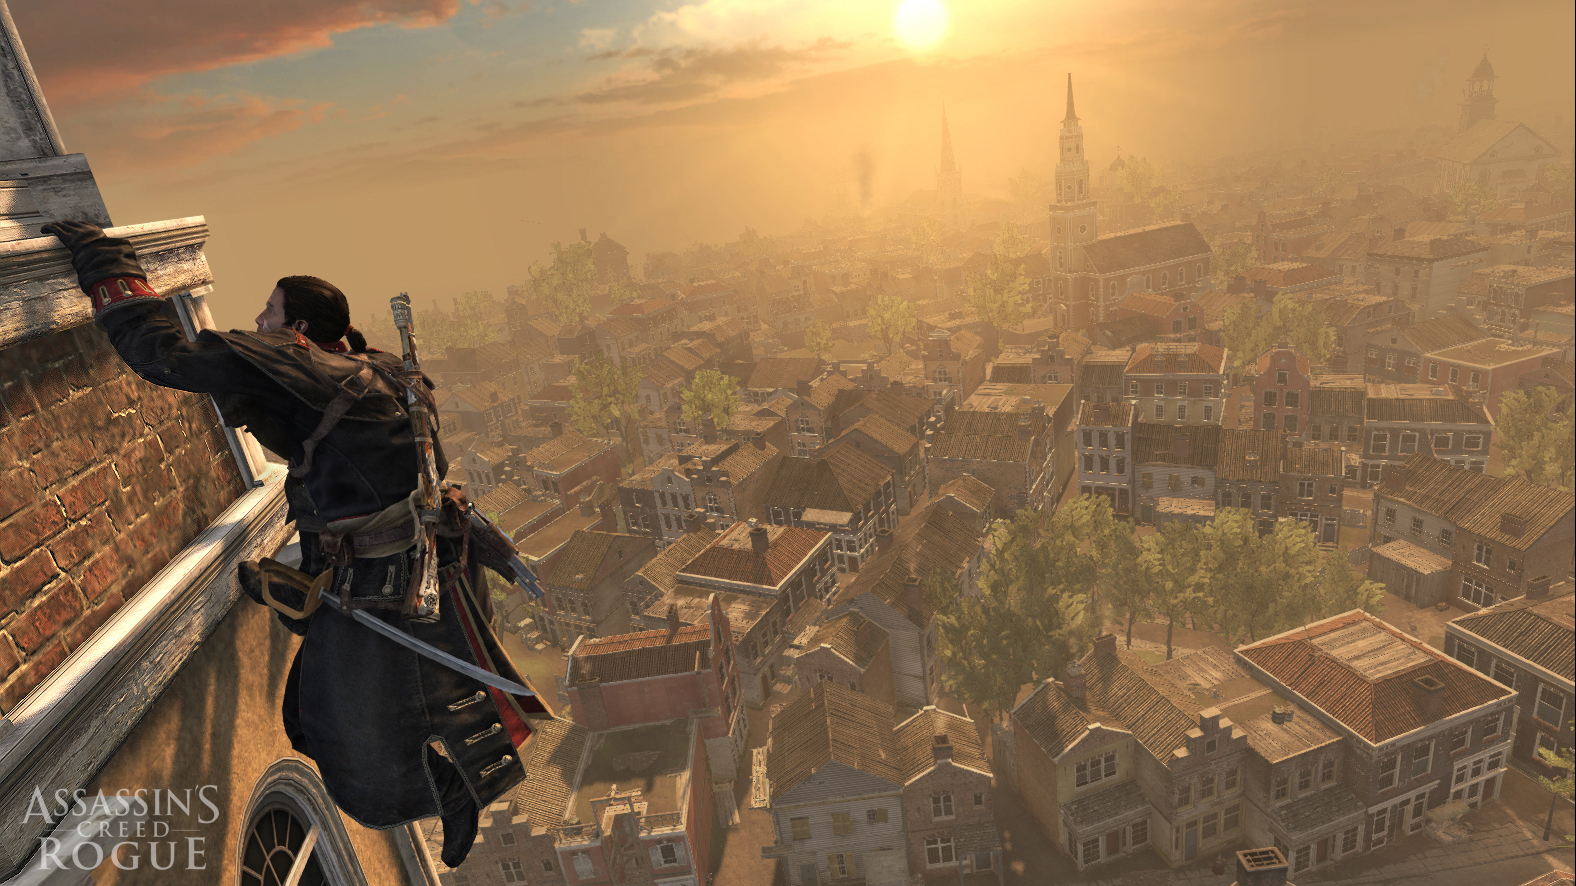 assassins-creed-rogue-screenshot-ny